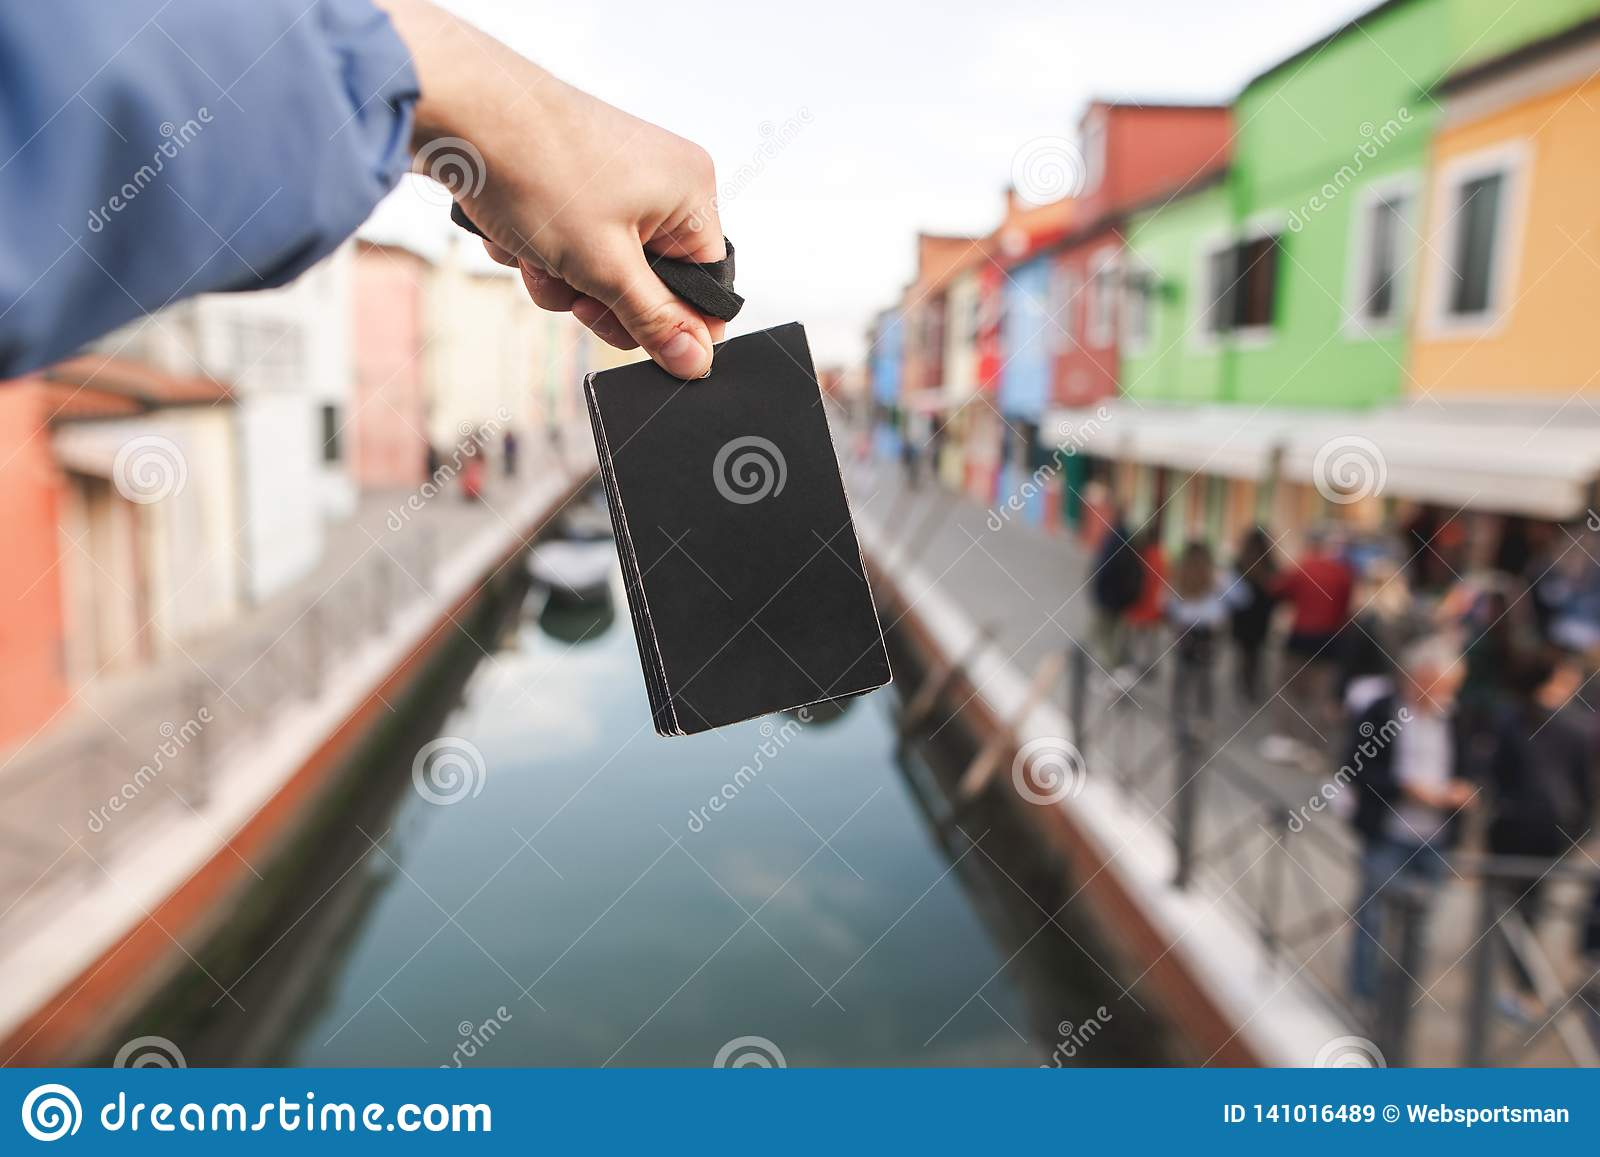 Black empty card in the hands of a young man on the background of colored houses and canal of Burano island, Venice